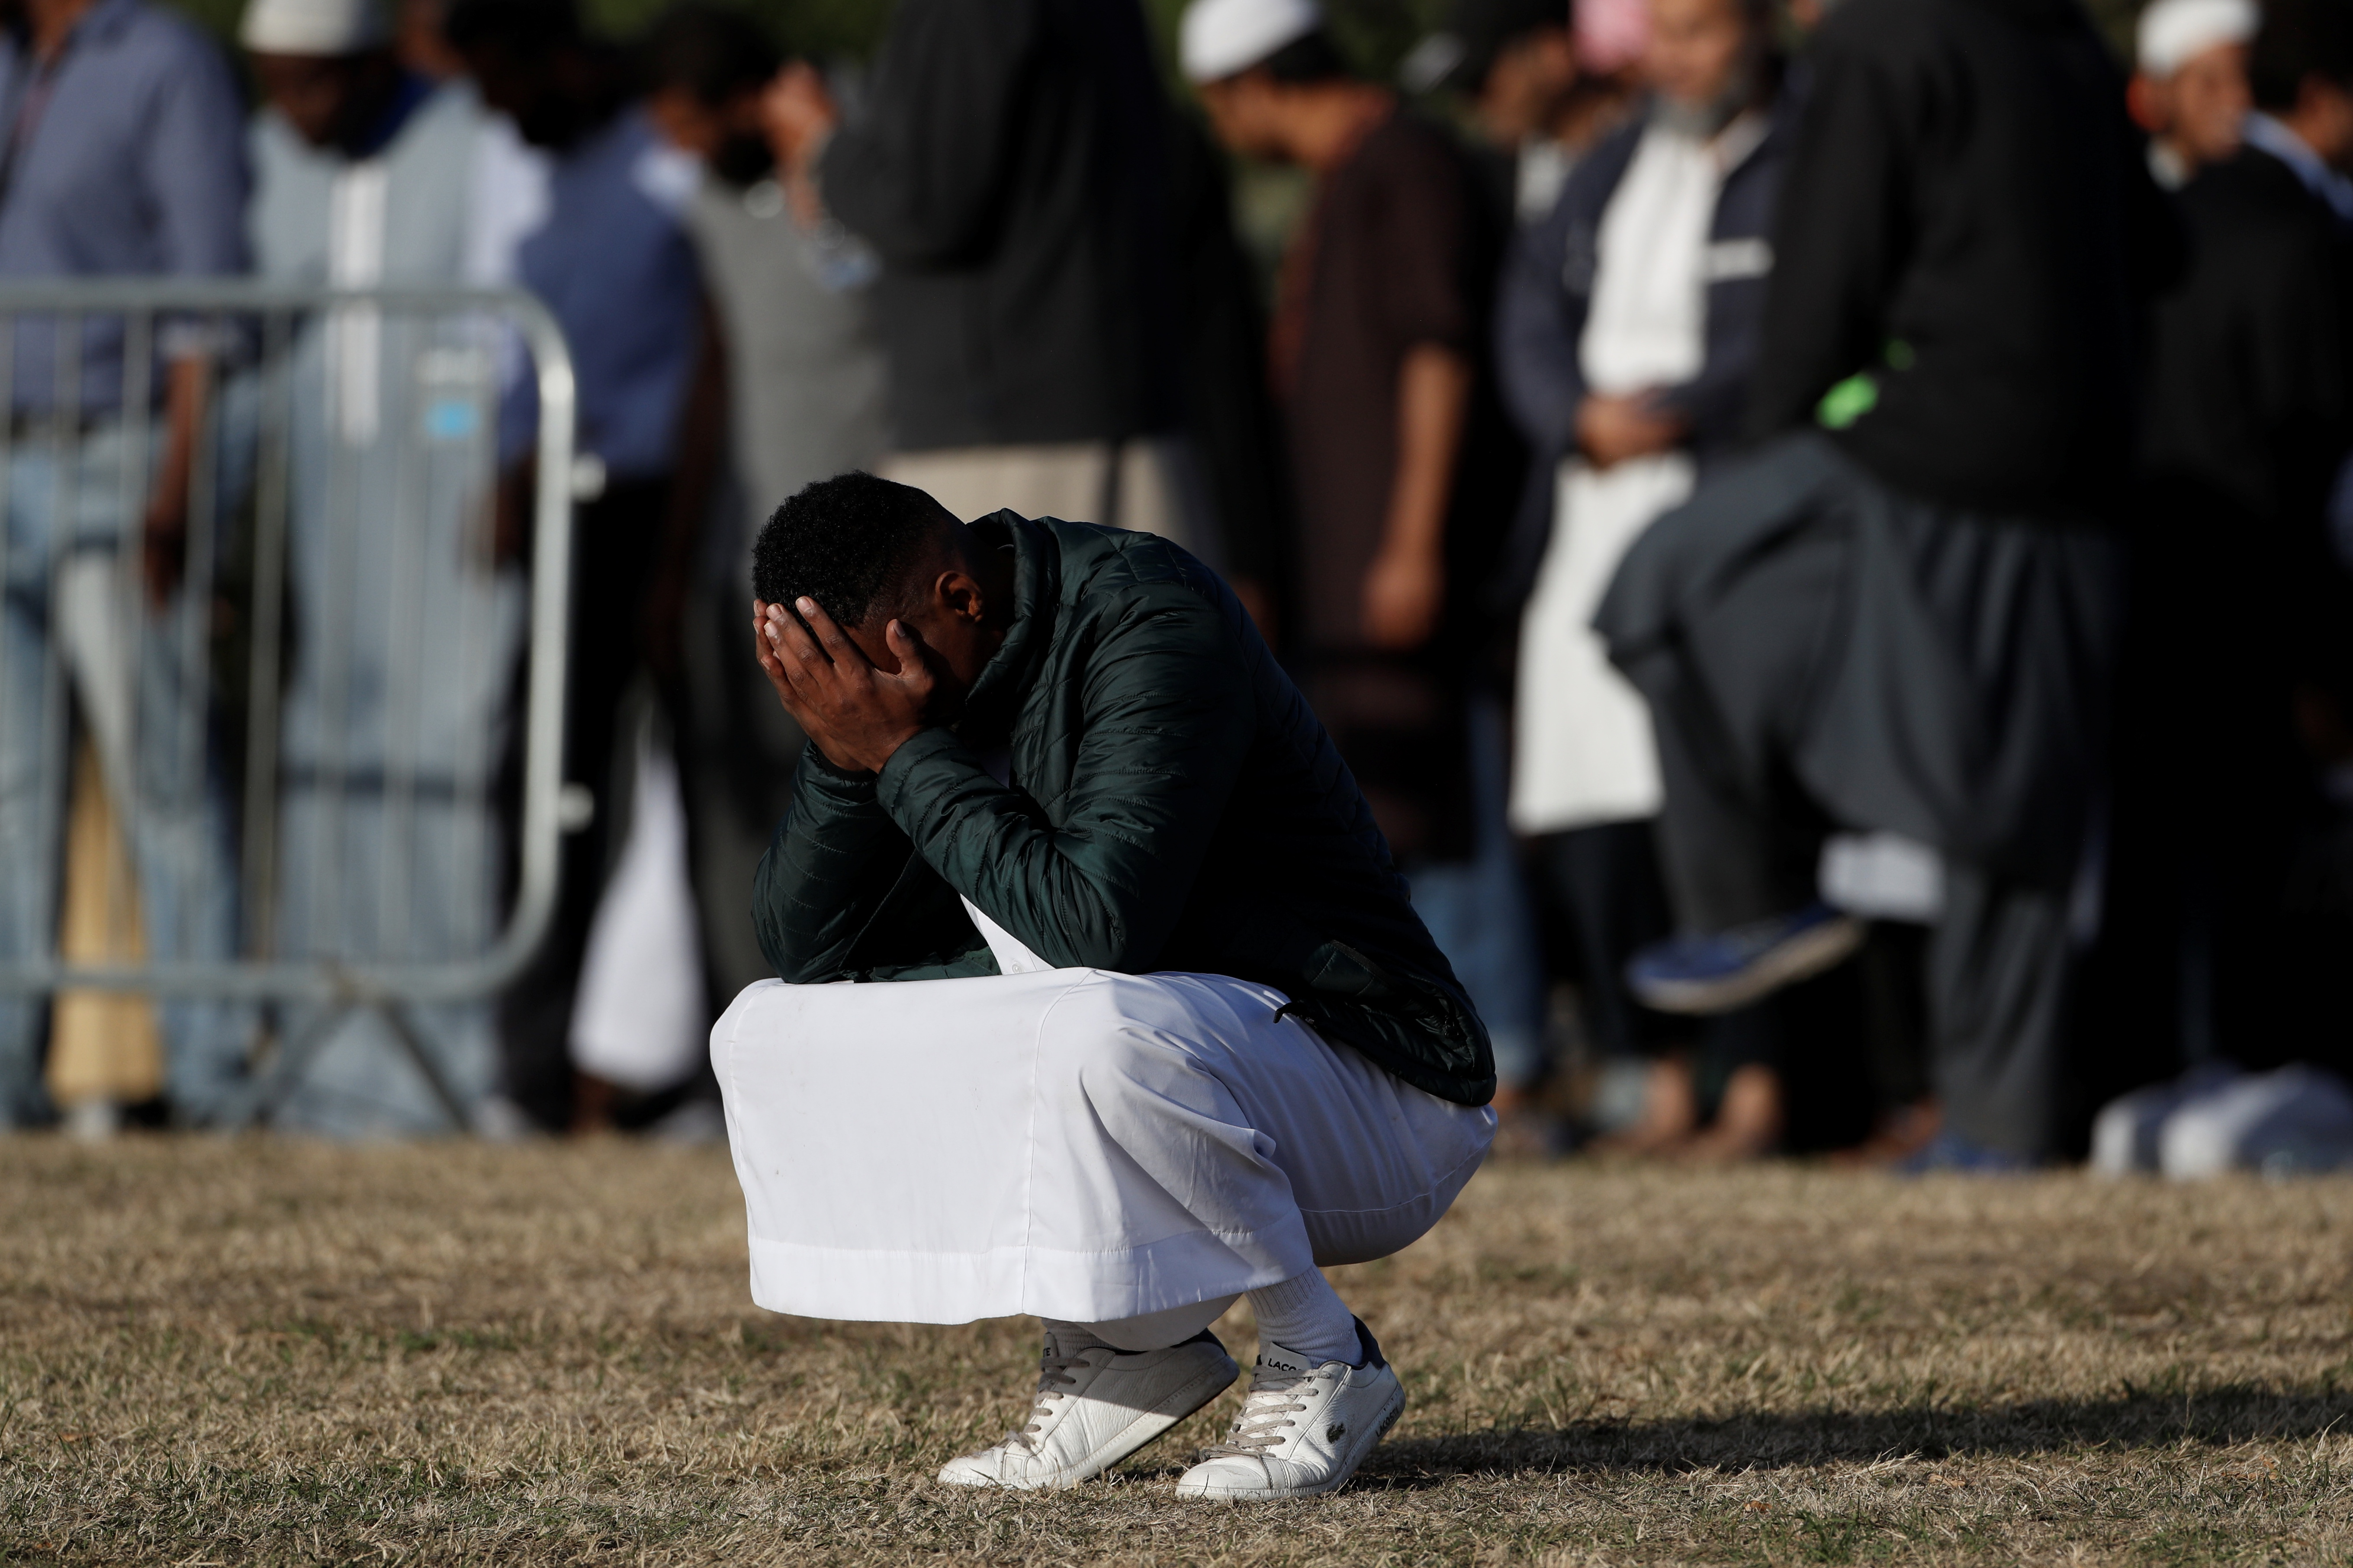 Christchurch-massacre-mourning-reuters-img